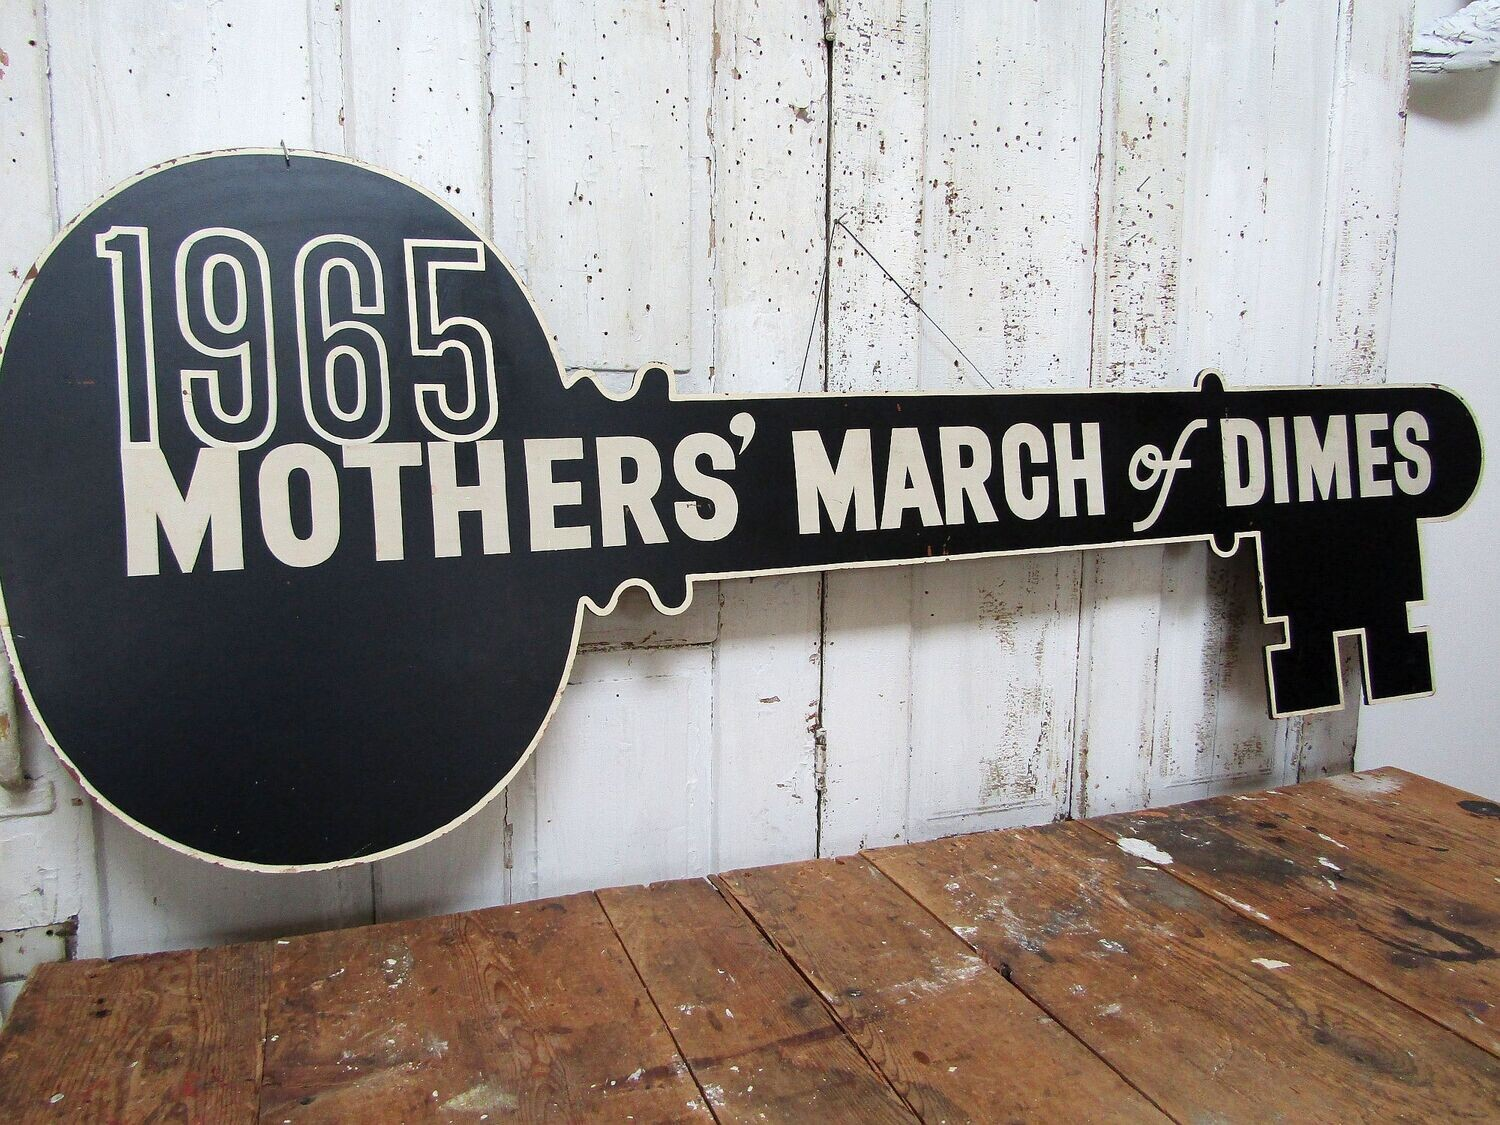 RARE Large vintage key shaped sign advertisement for the wall, March Of Dimes, 1965, 60 inches by 24 inches